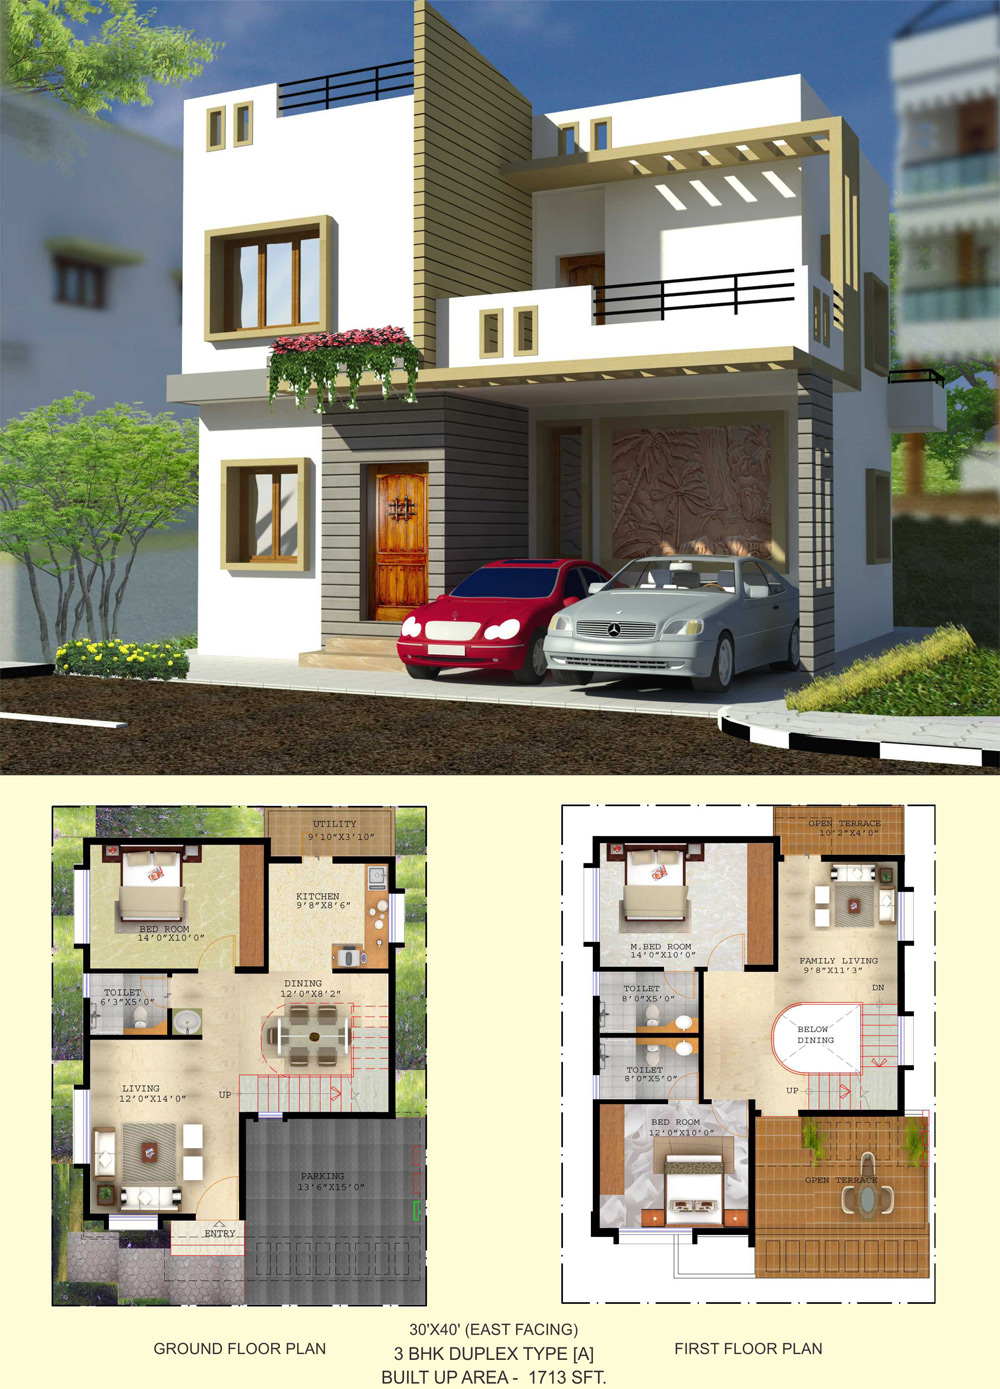 Duplex house plans 30x40 escortsea for 30x50 duplex house plans